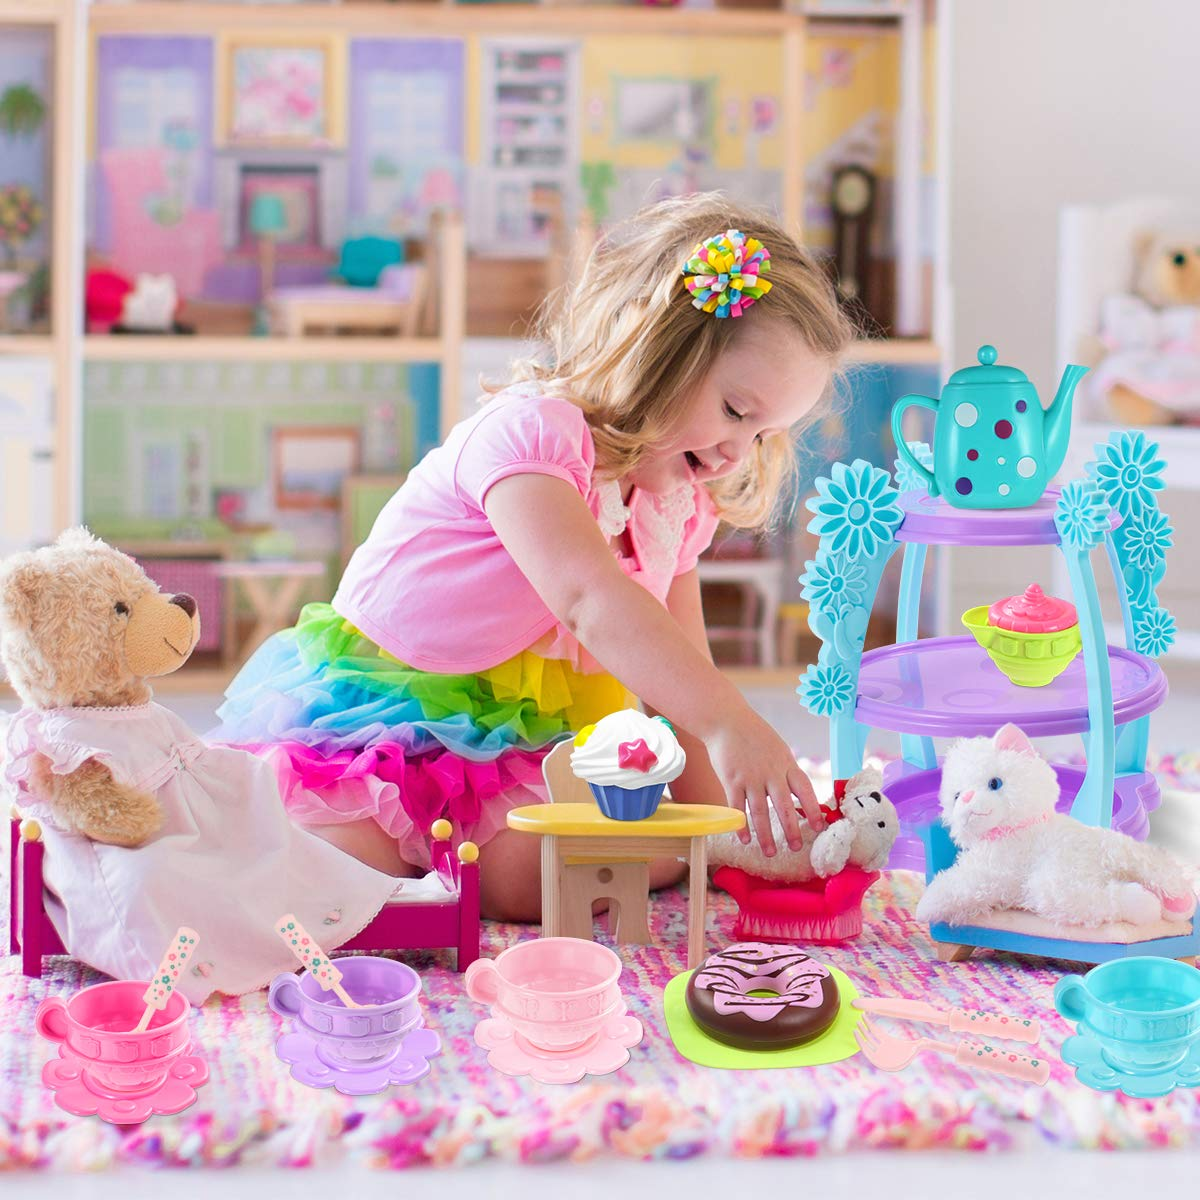 Dishwasher Safe iBaseToy Tea Set 35 Pieces Pretend Play Tea Party Set Toys for Kids Toddlers Boys Girls Includes Full Tea Set with Pastries Cake Stand and More Food-Safe Material